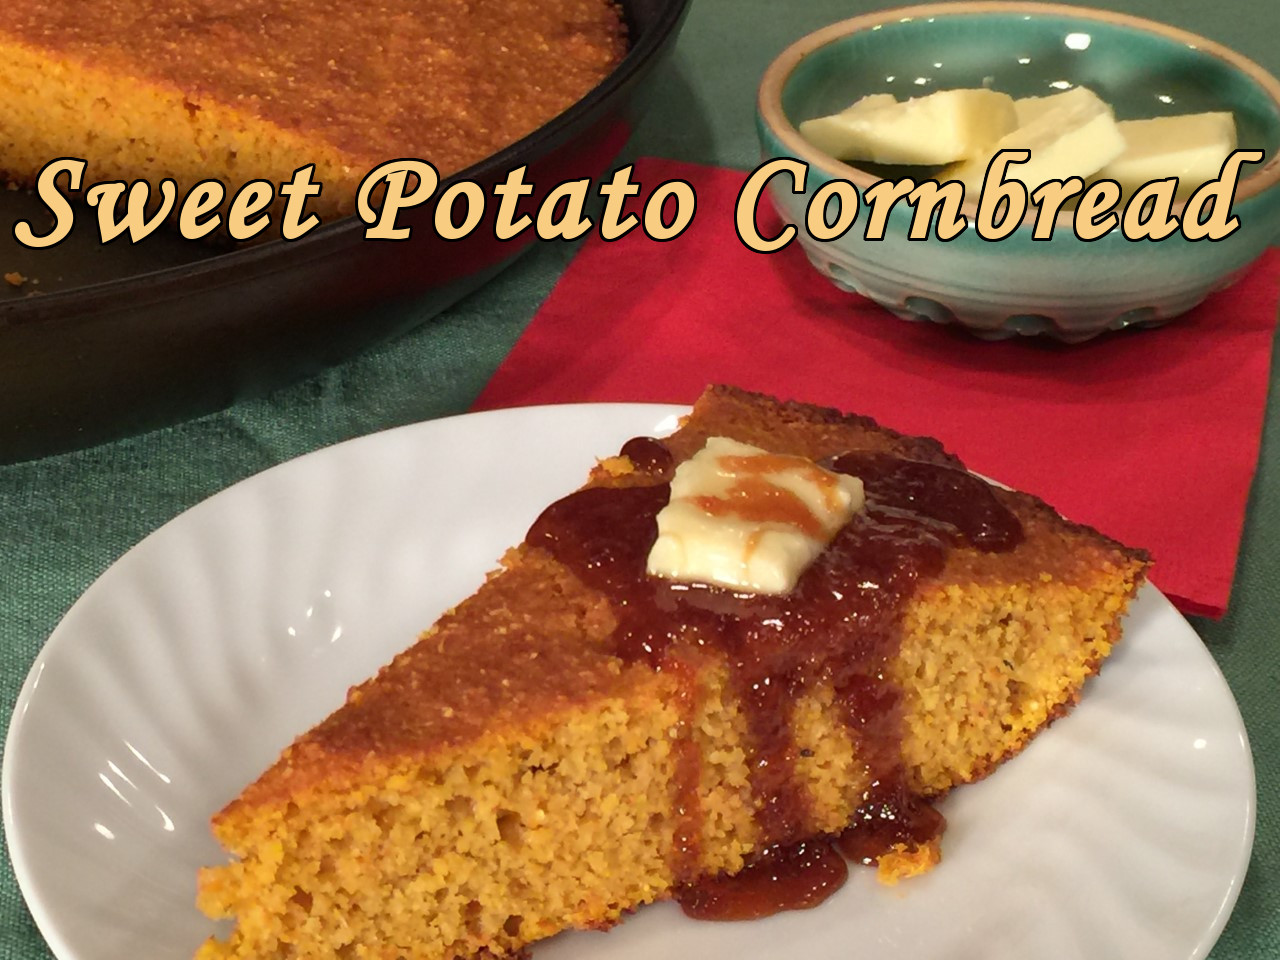 sweet potato cornbread text